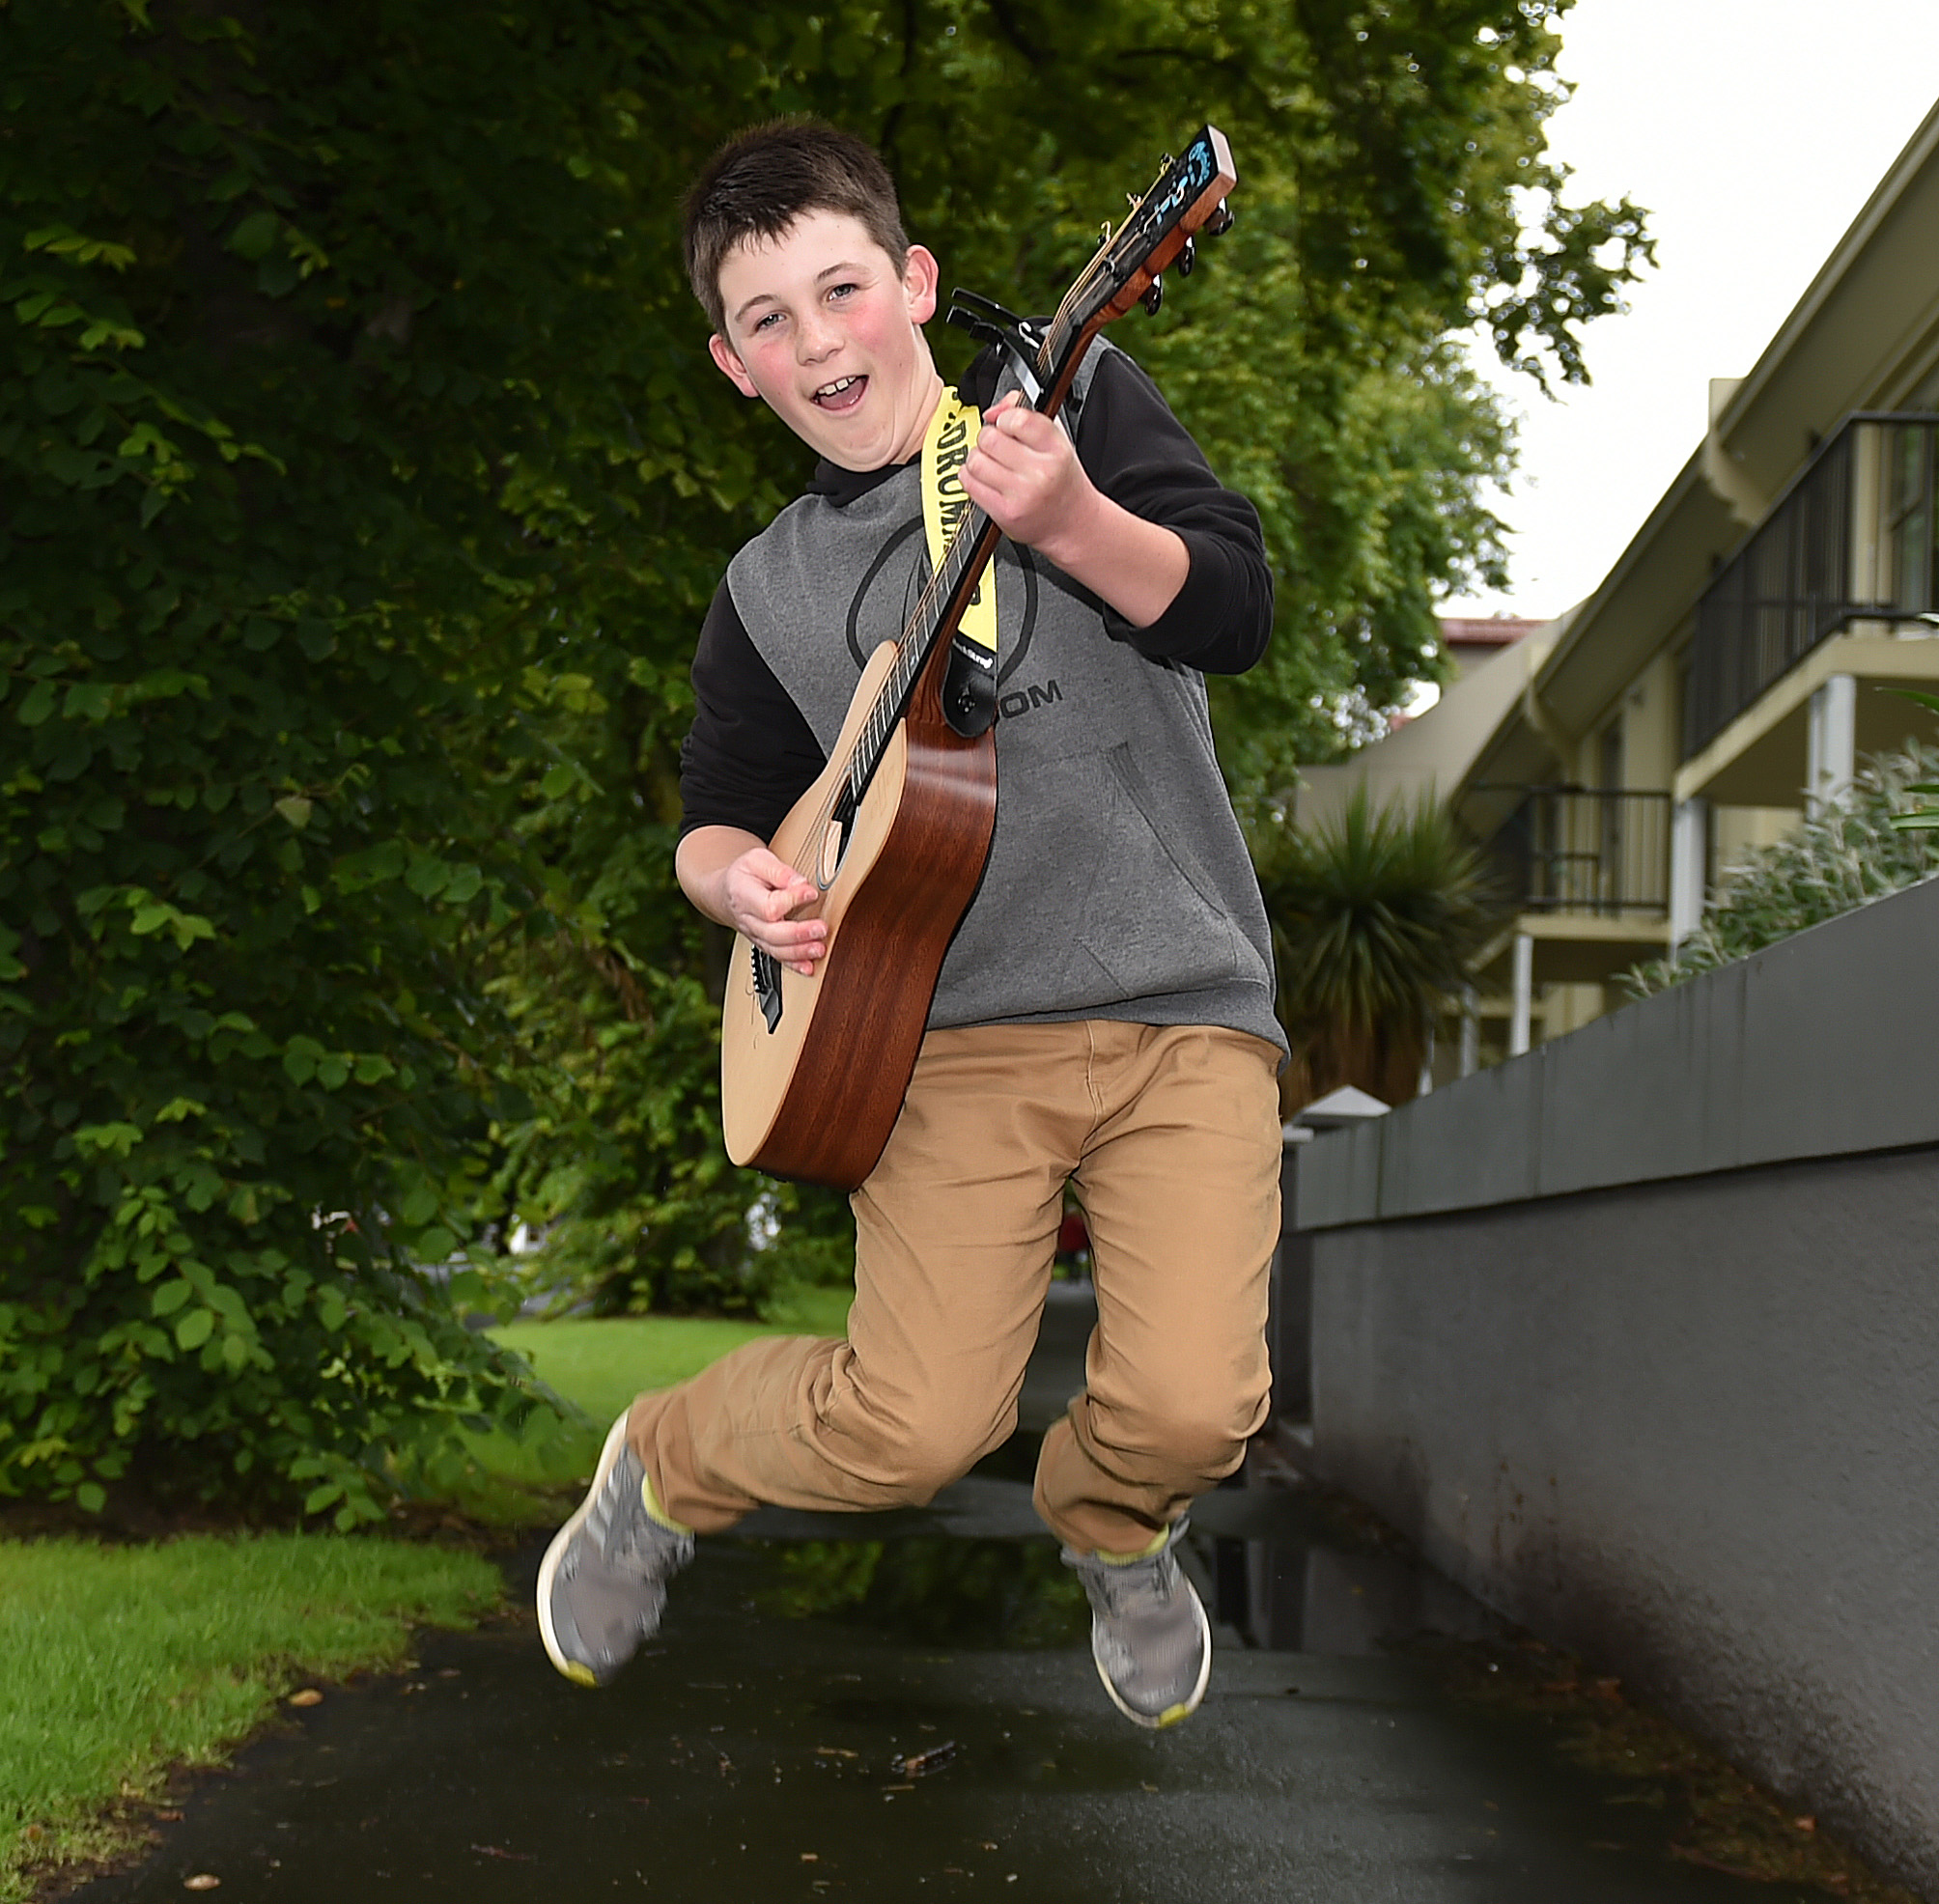 Busker Rylan Urquhart (13), of Dunedin, gets amped up to entertain Shania Twain concert goers...